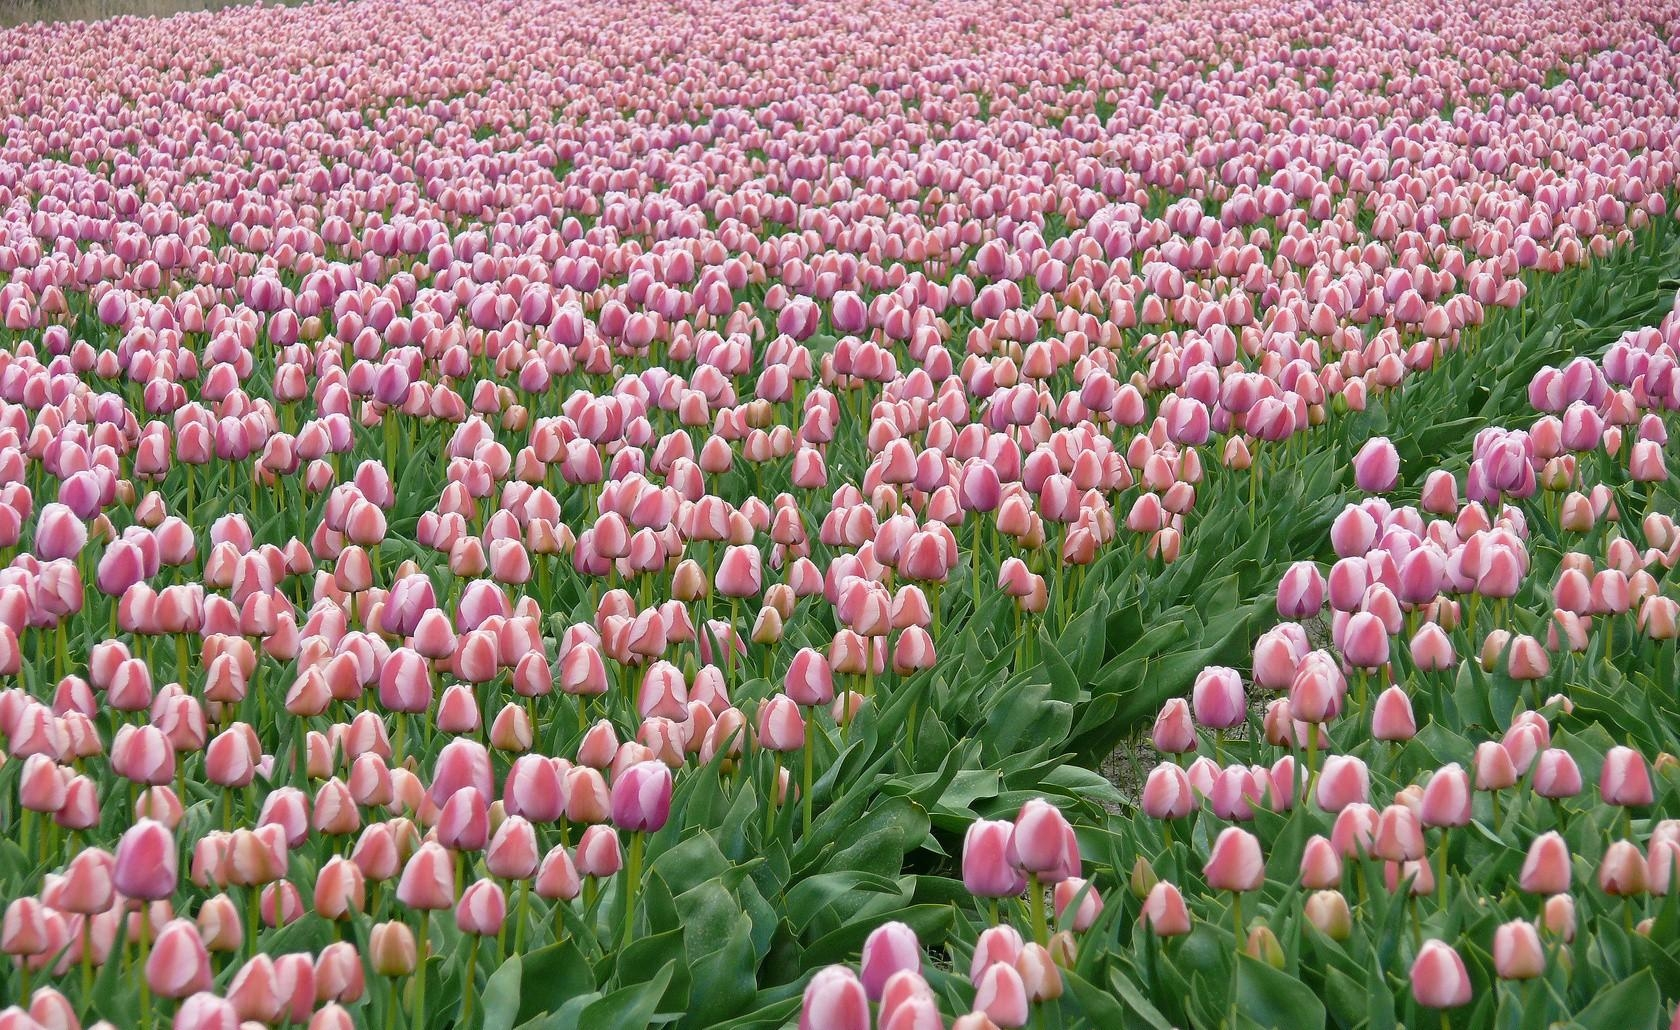 65298 download wallpaper Flowers, Tulips, Field, Plantation, Spring screensavers and pictures for free